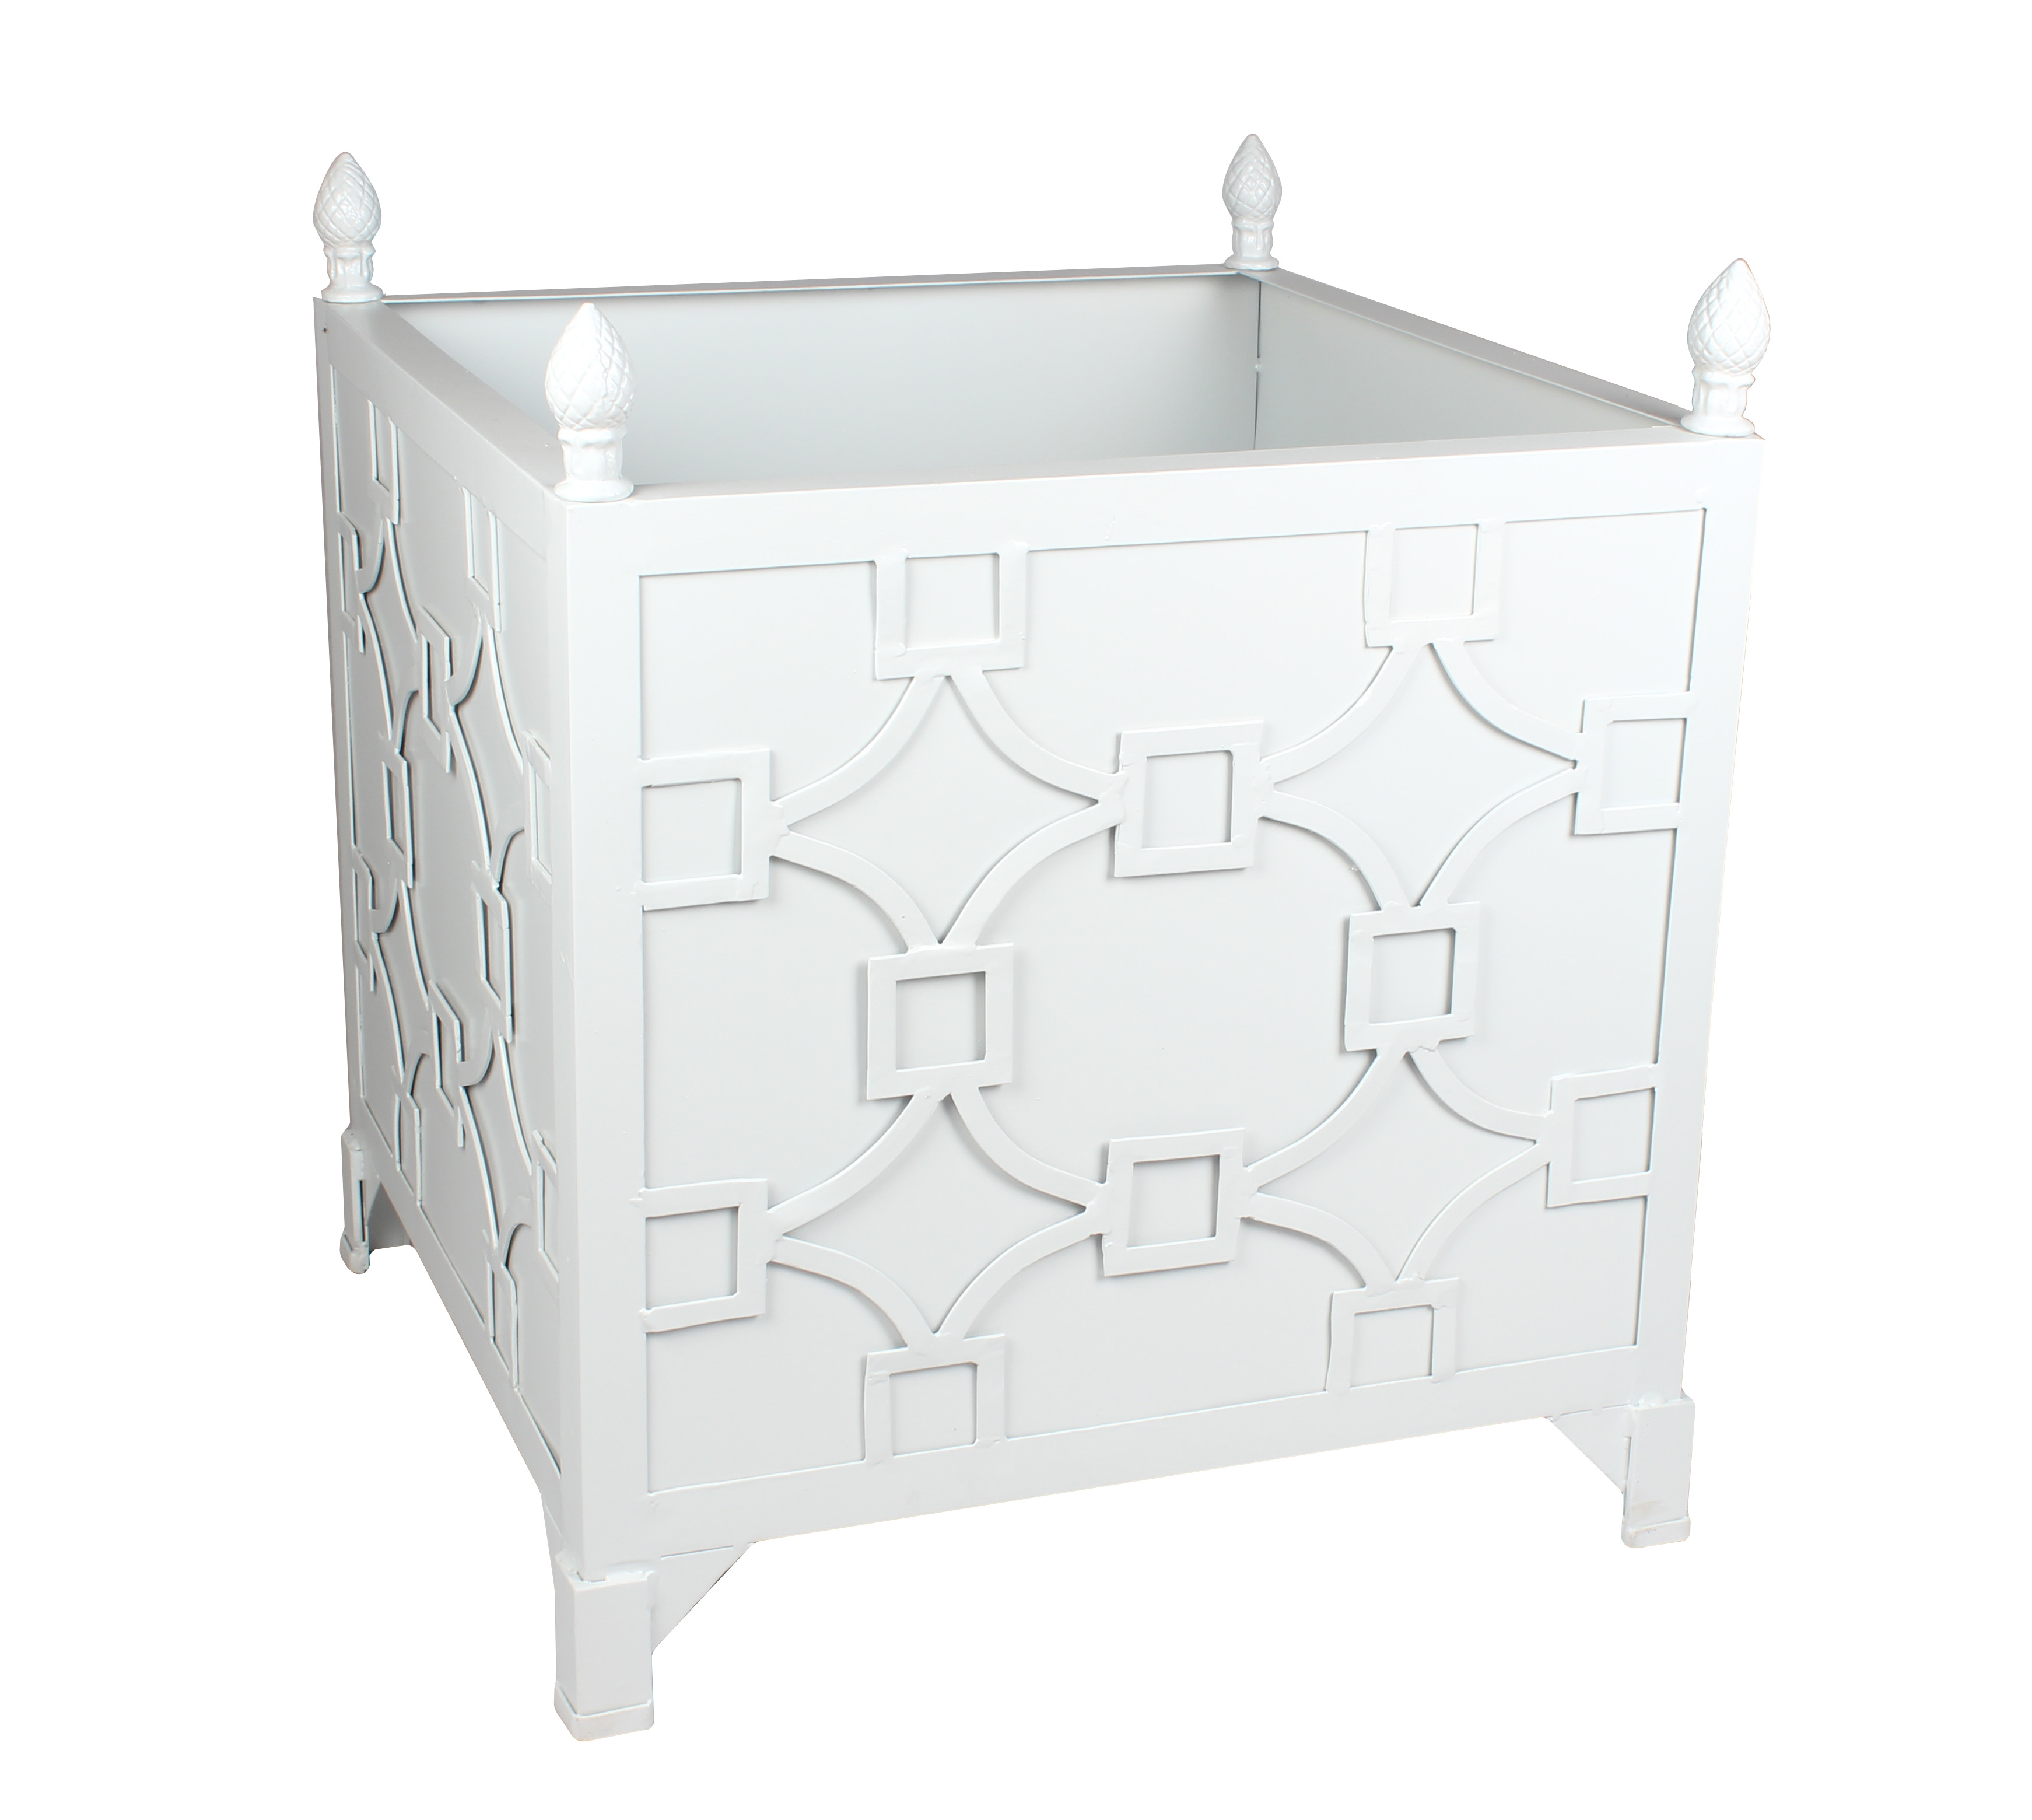 Fabulous new fretwork Provence planter - Pale Blue